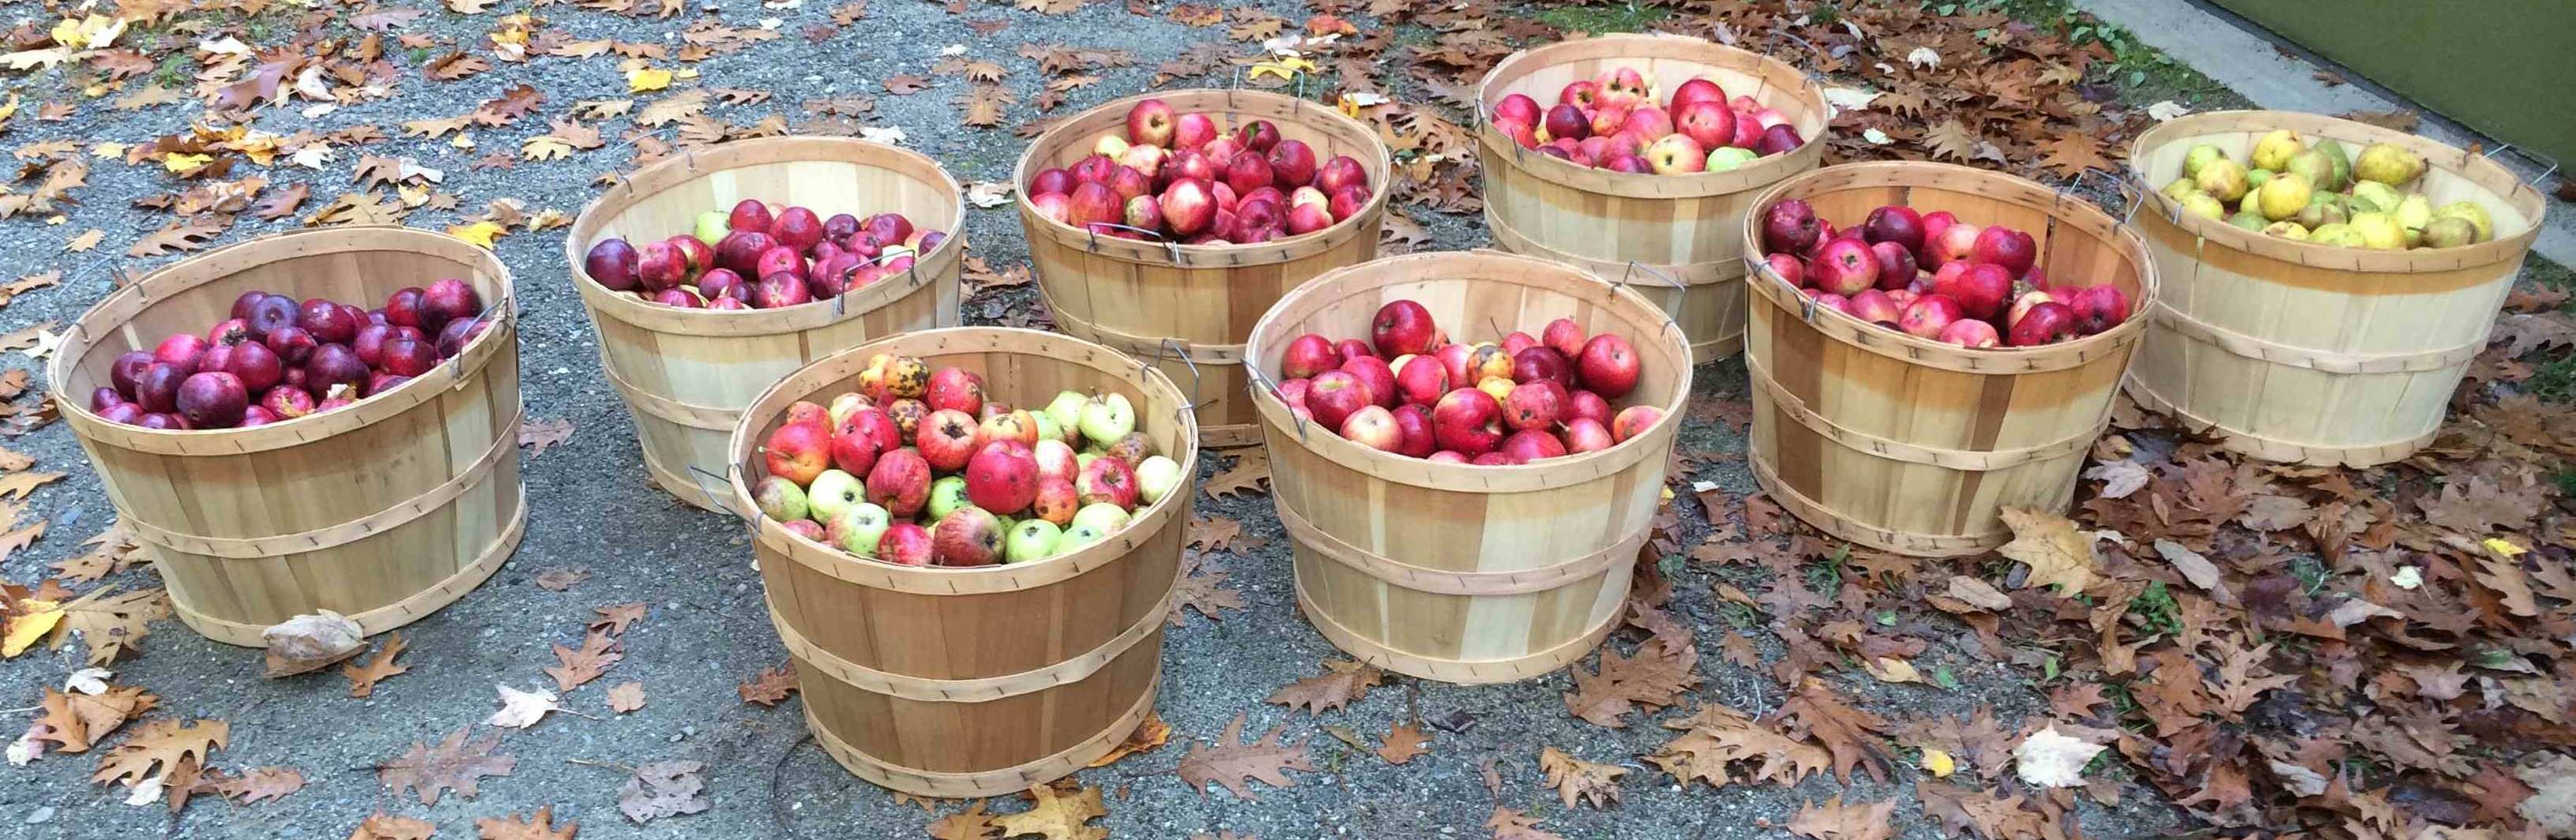 A little over seven bushels of apples ready for pressing